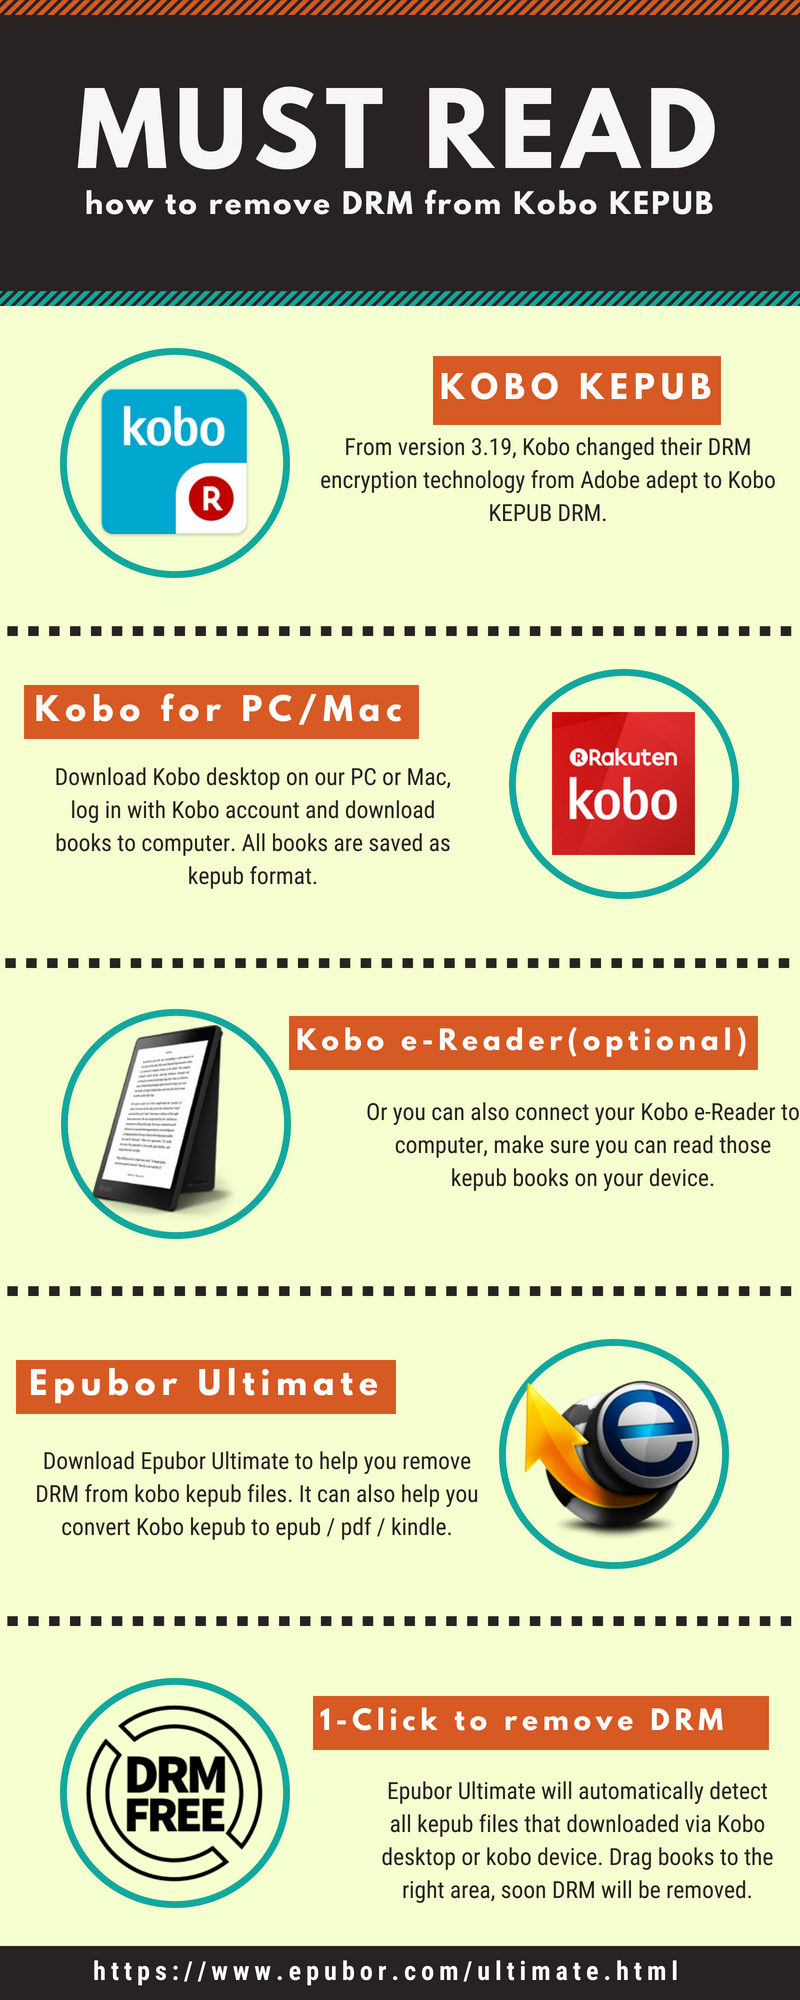 Kobo DRM Removal, Remove DRM from Kobo KEPUB EPUB PDF Files